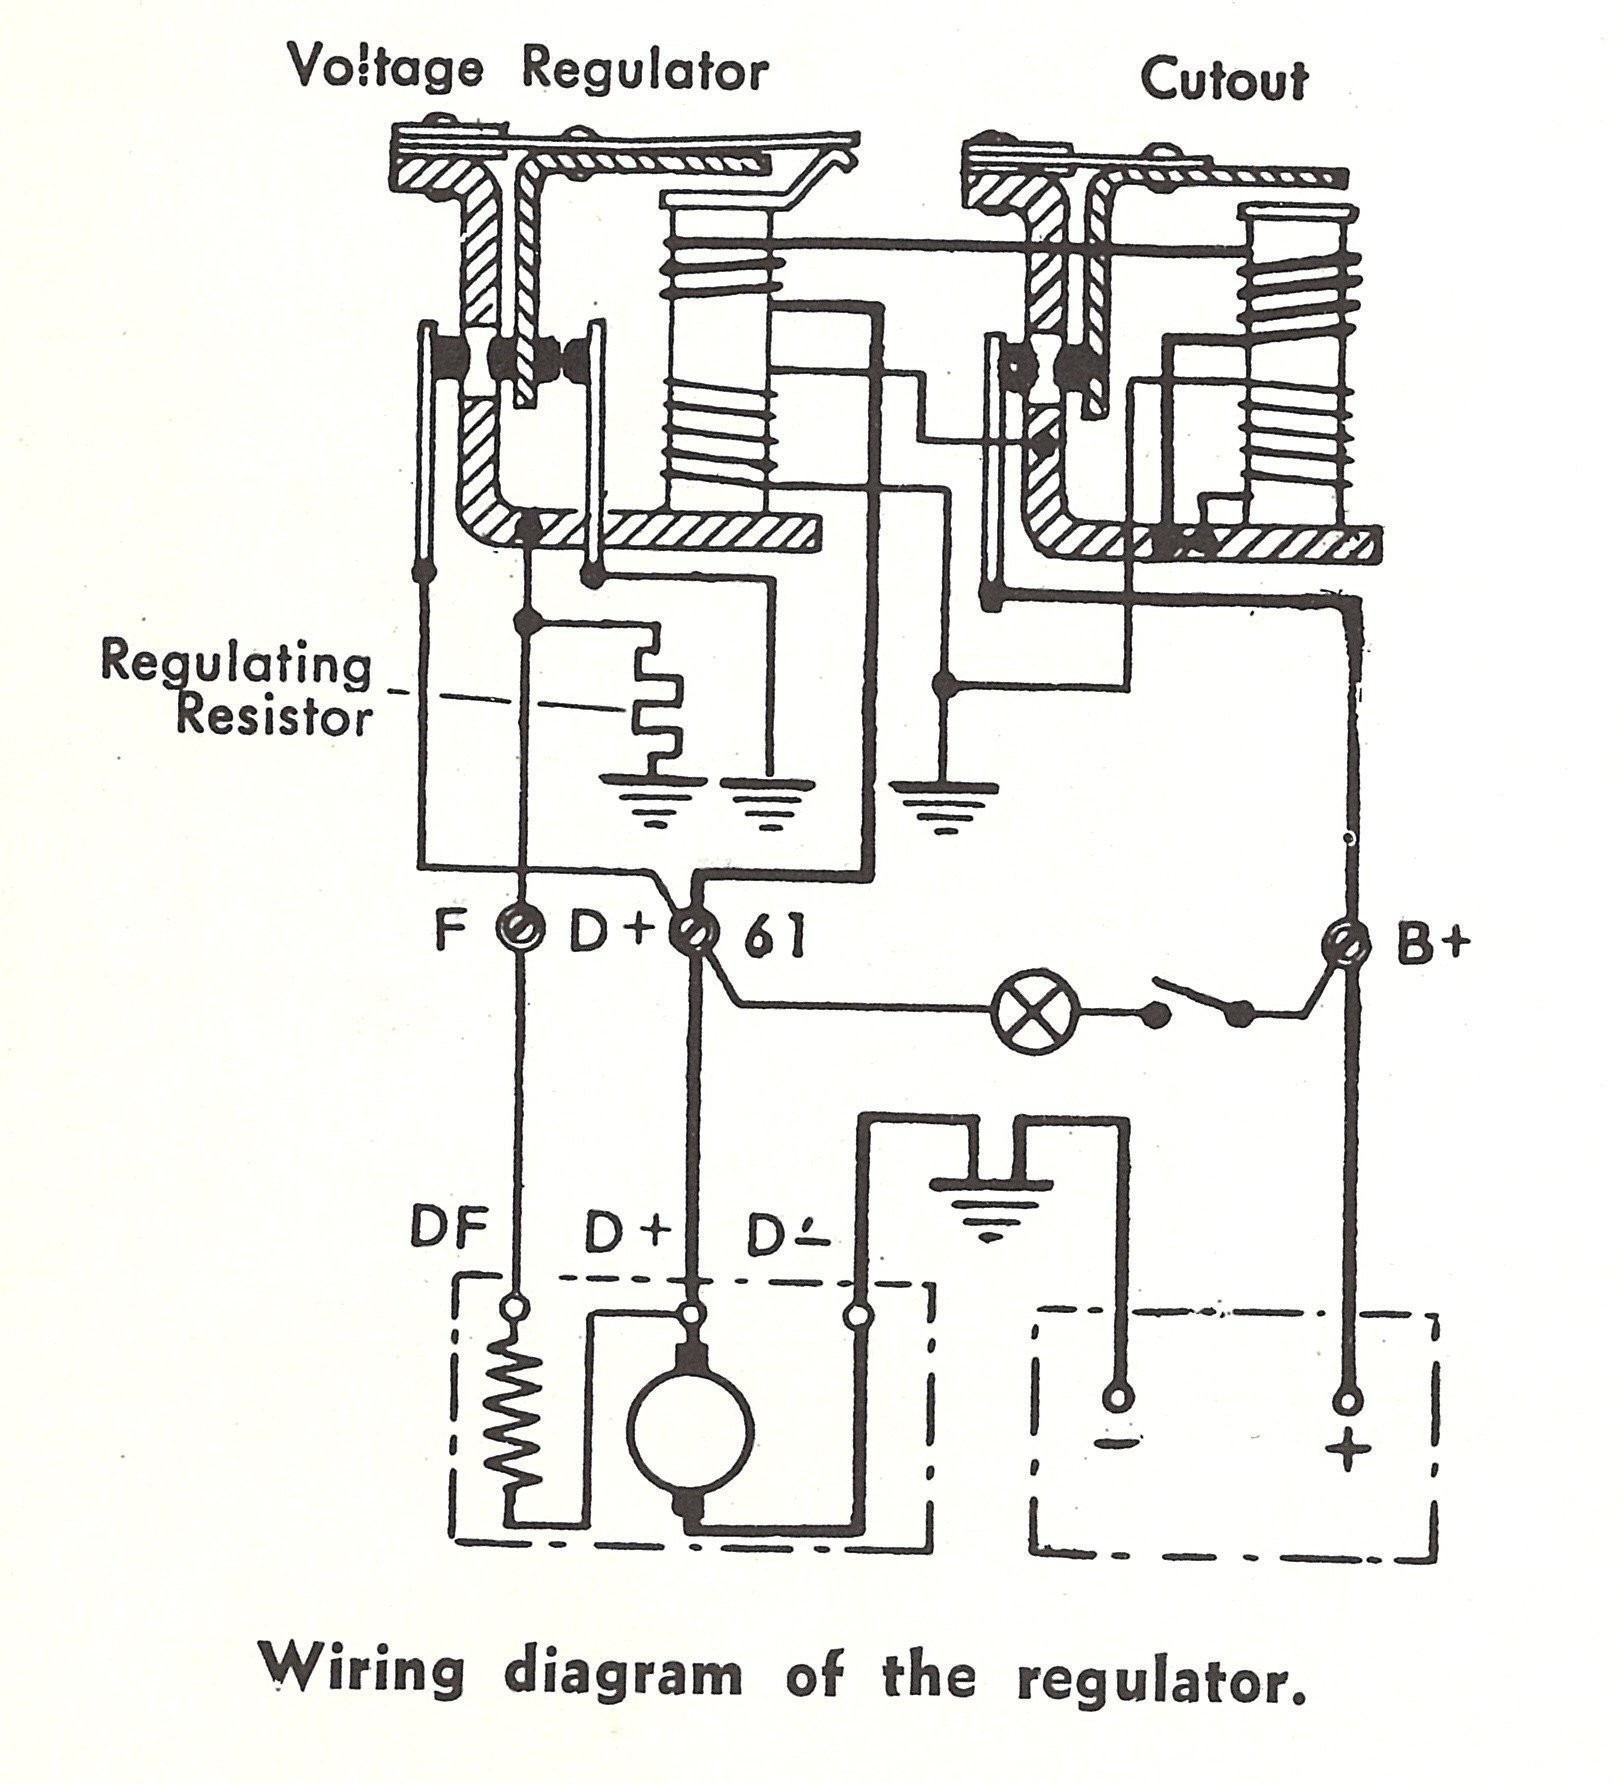 Kohler Voltage Regulator Wiring Diagram